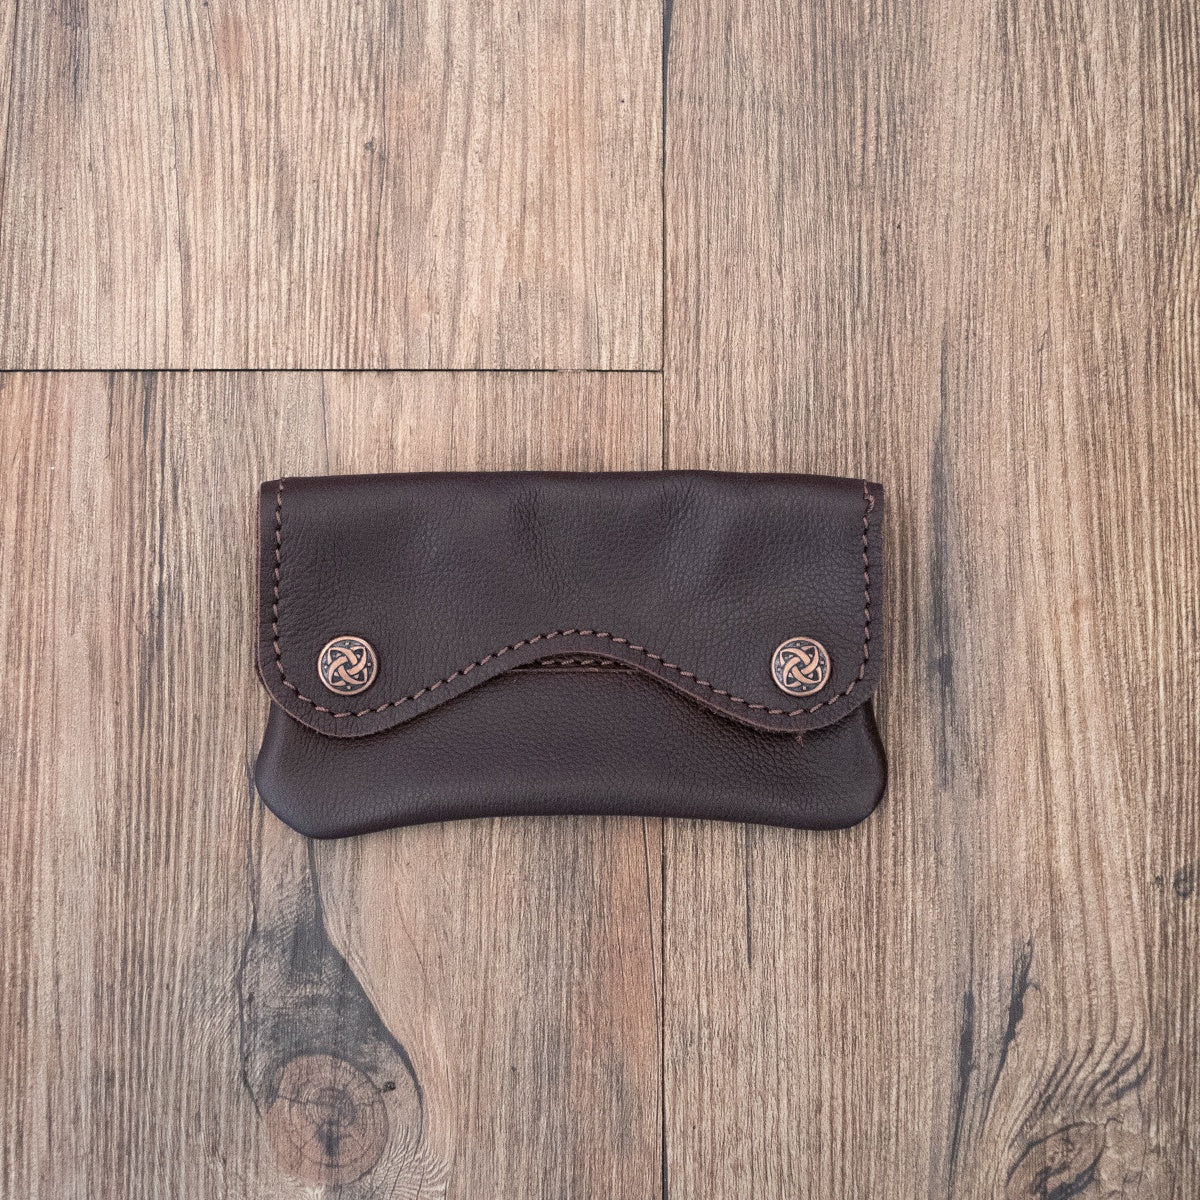 Leather tobacco pouch with 2 clips.